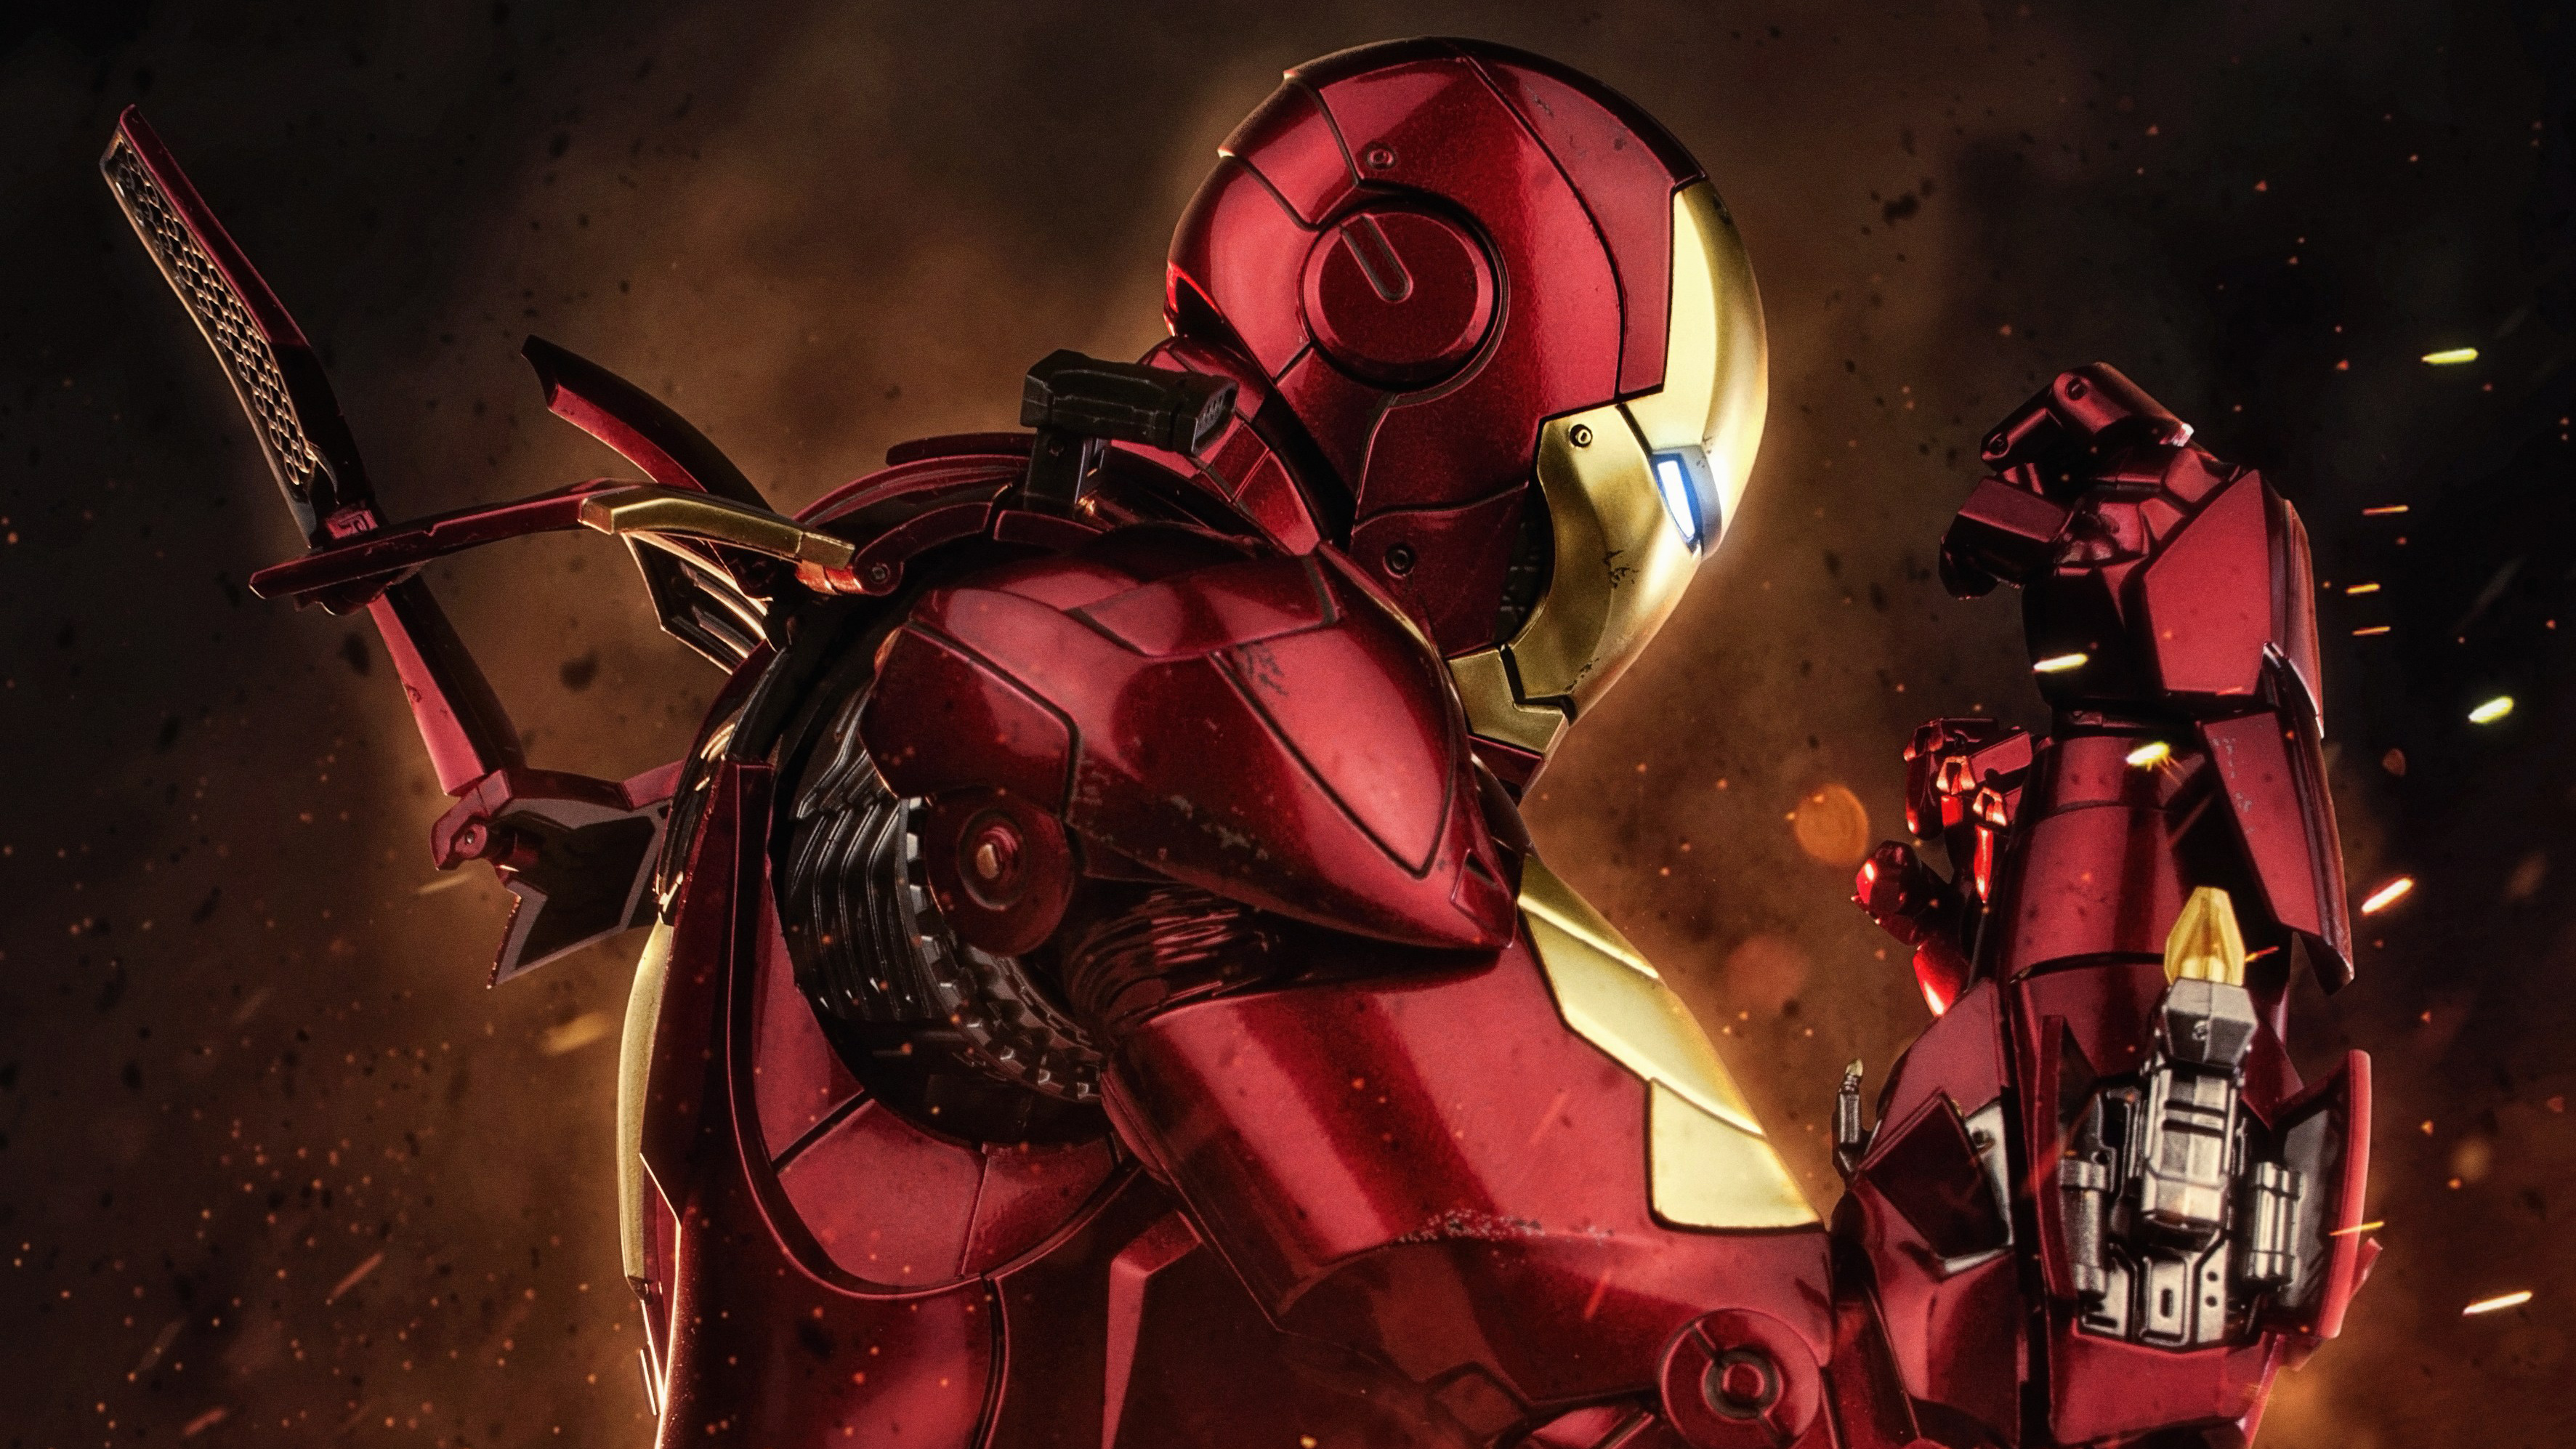 4k iron man 2019 hd superheroes 4k wallpapers images backgrounds photos and pictures - Iron man wallpaper 4k ...